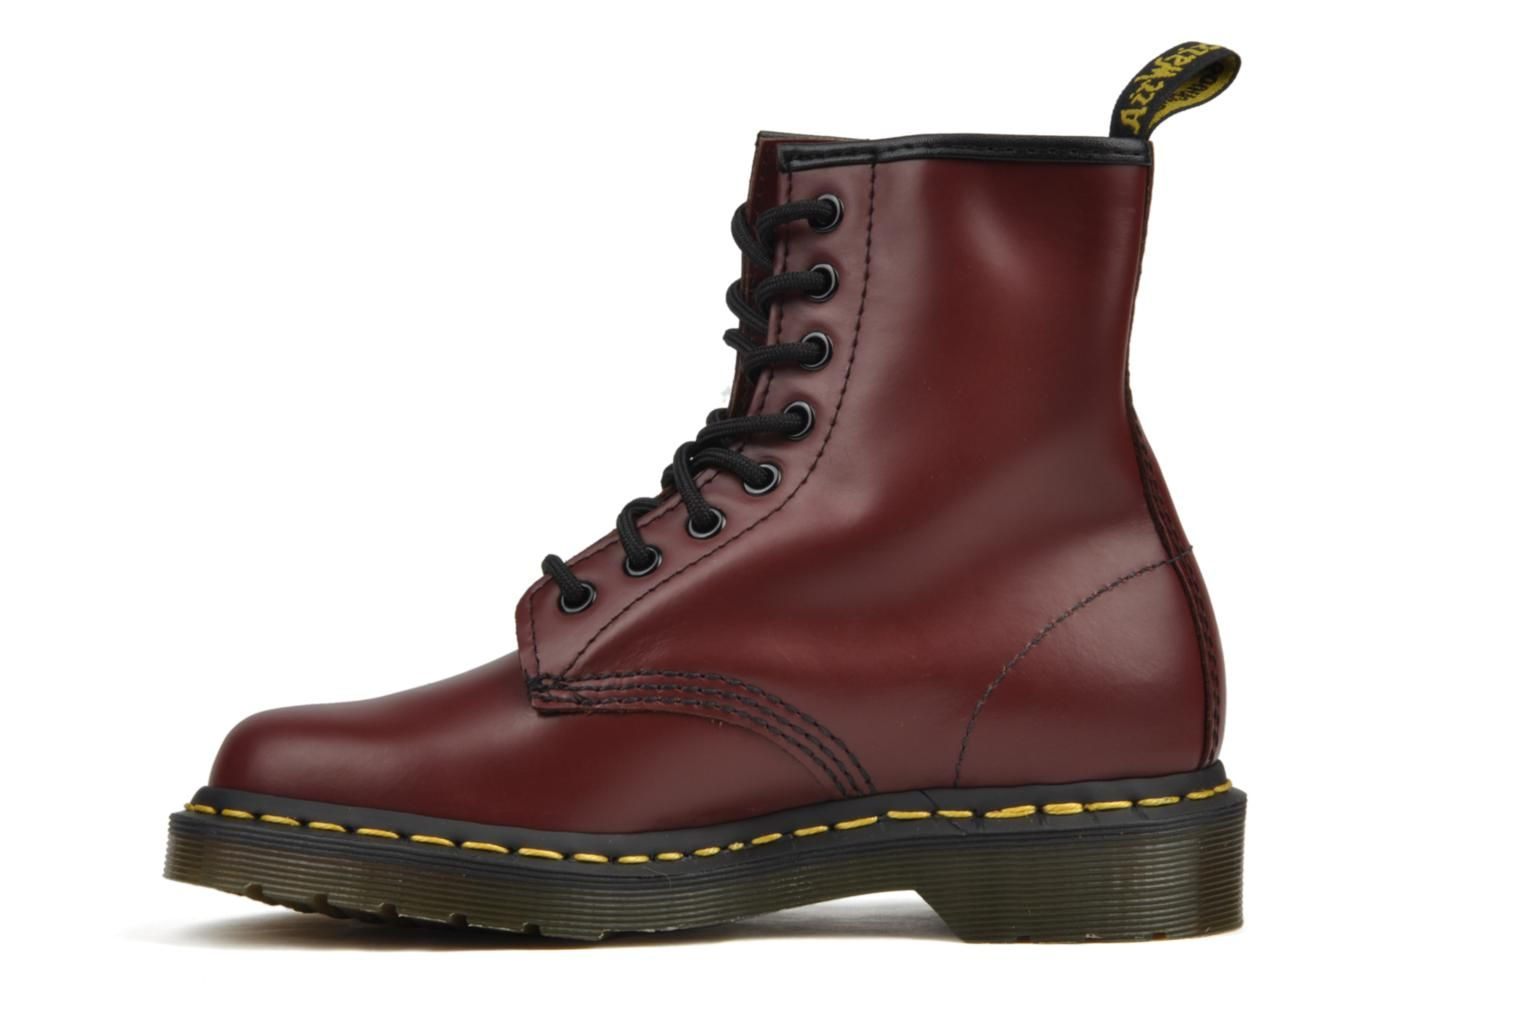 1460 m in 2019 | Shoes | Shoes, Boots, Dr martens 1460